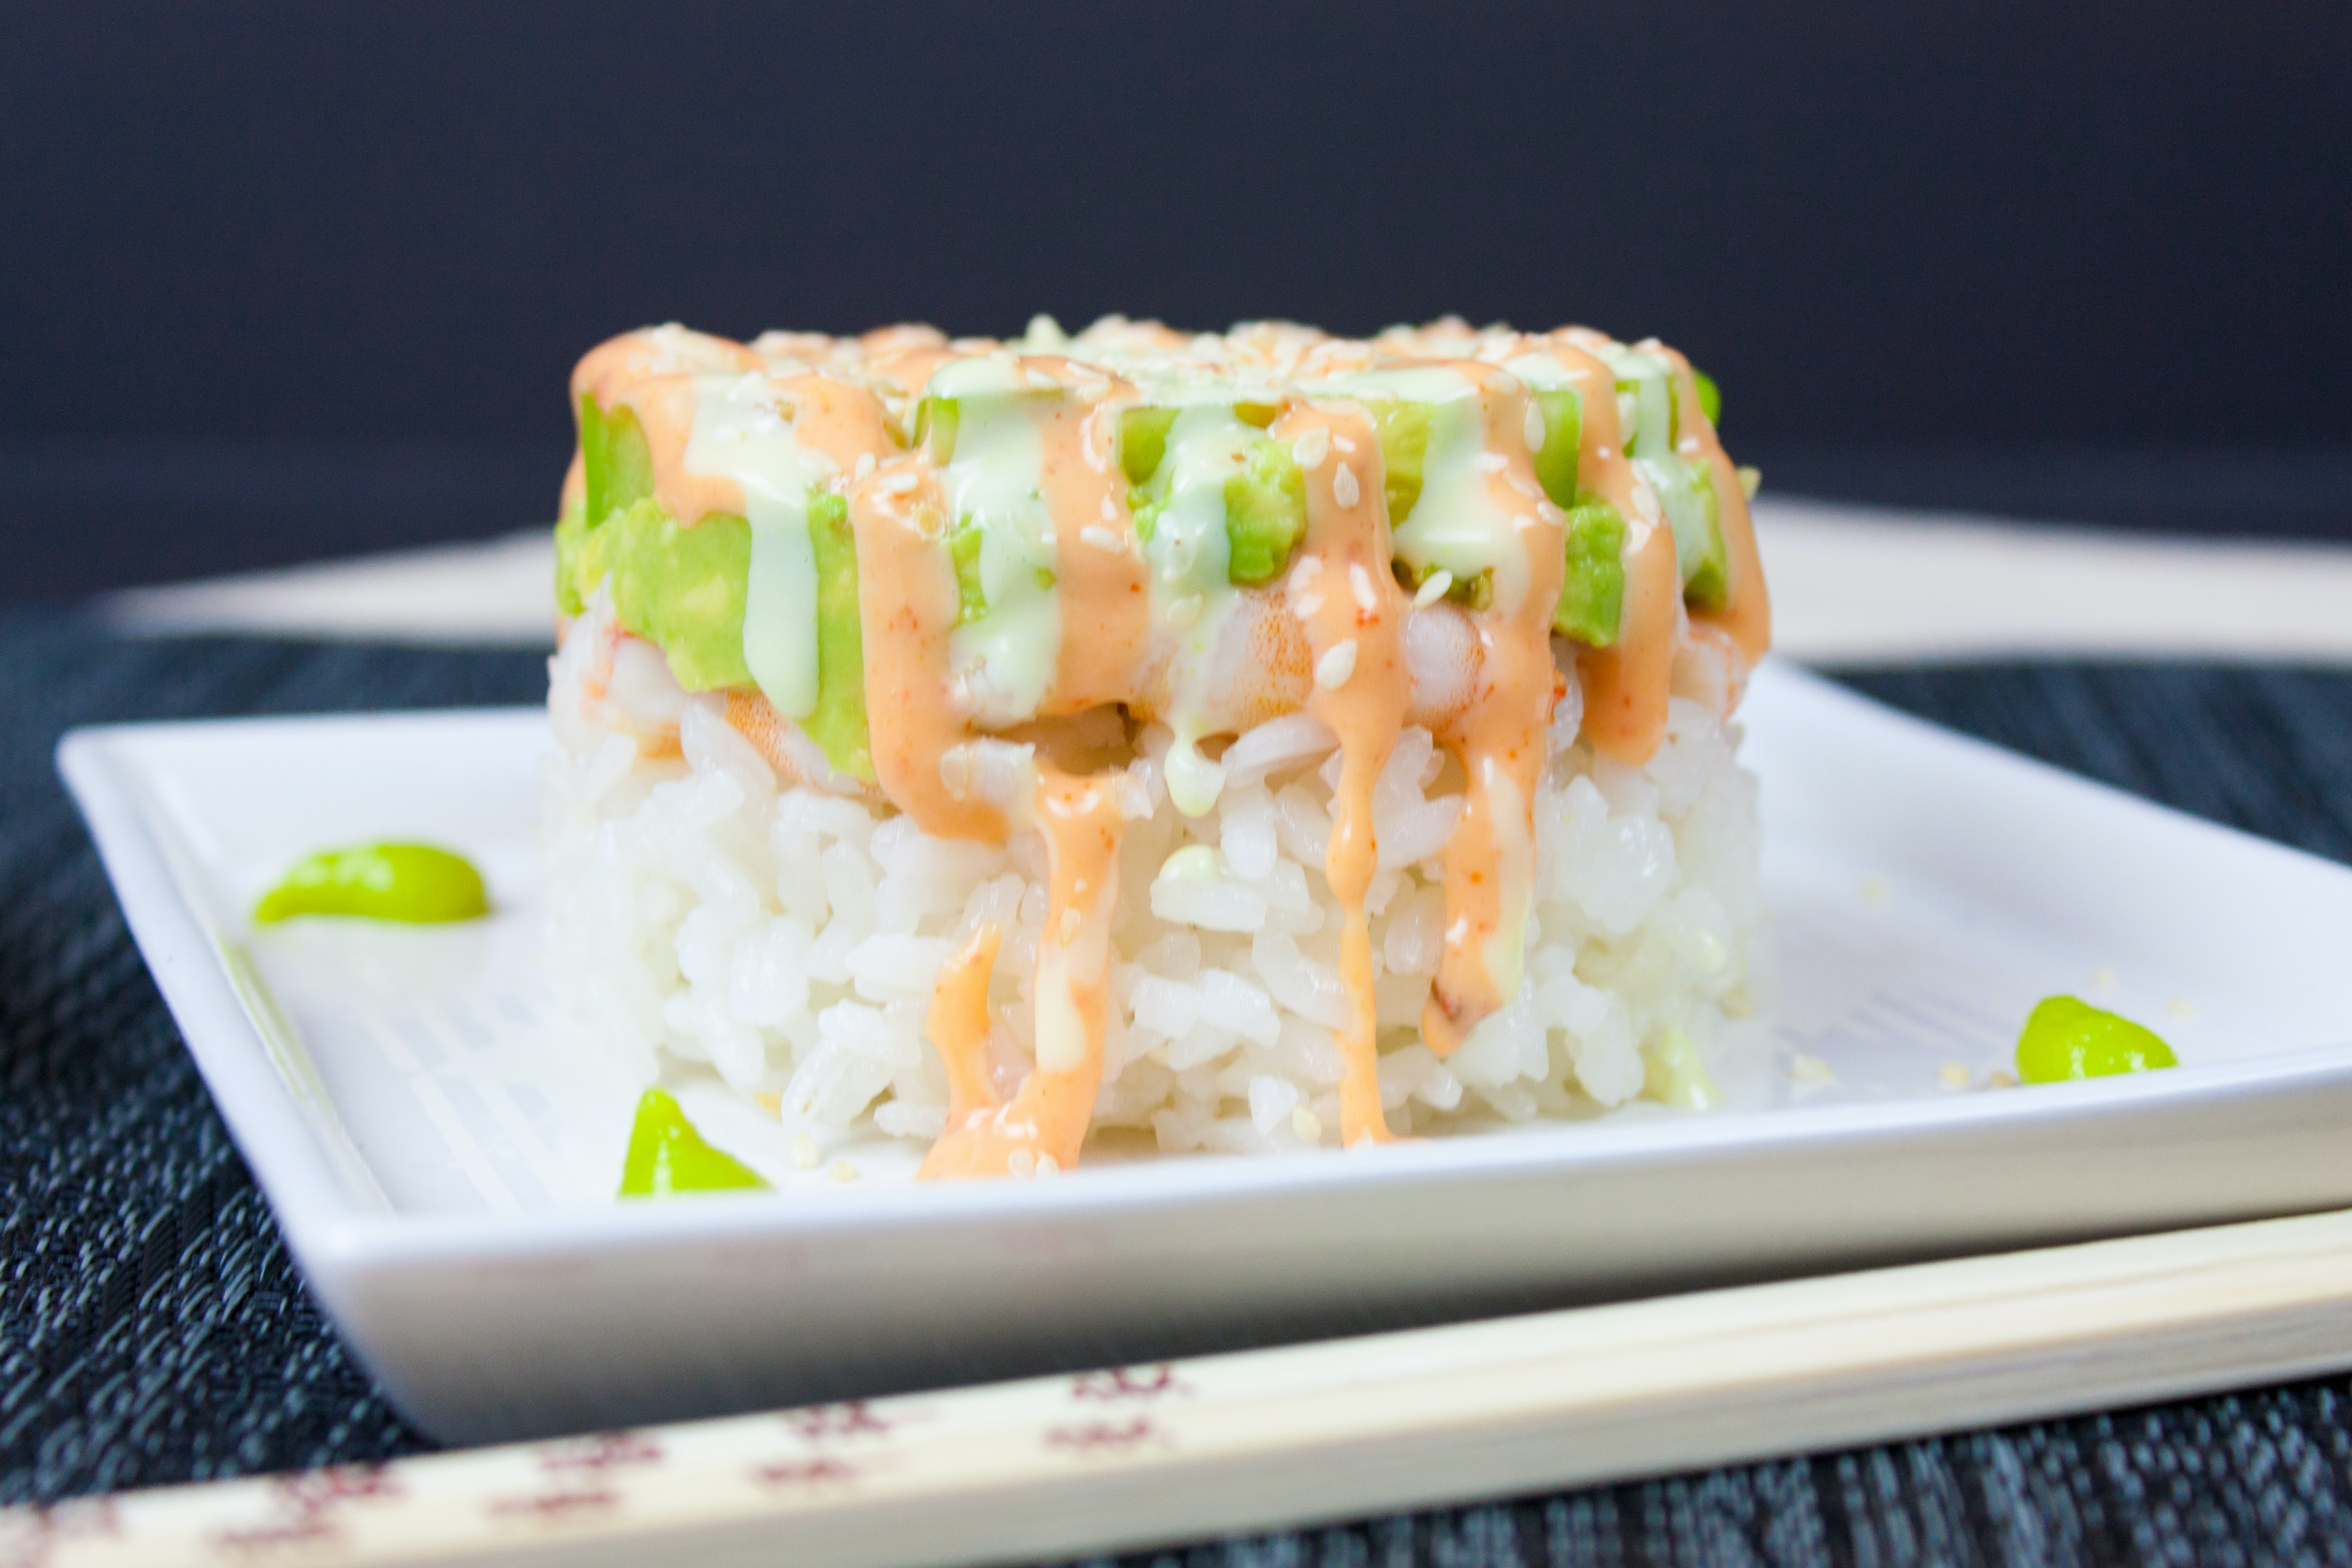 Asian dish consisting of a rice mount with vegetables, shrimp, sesames and a special sauce drizzled over